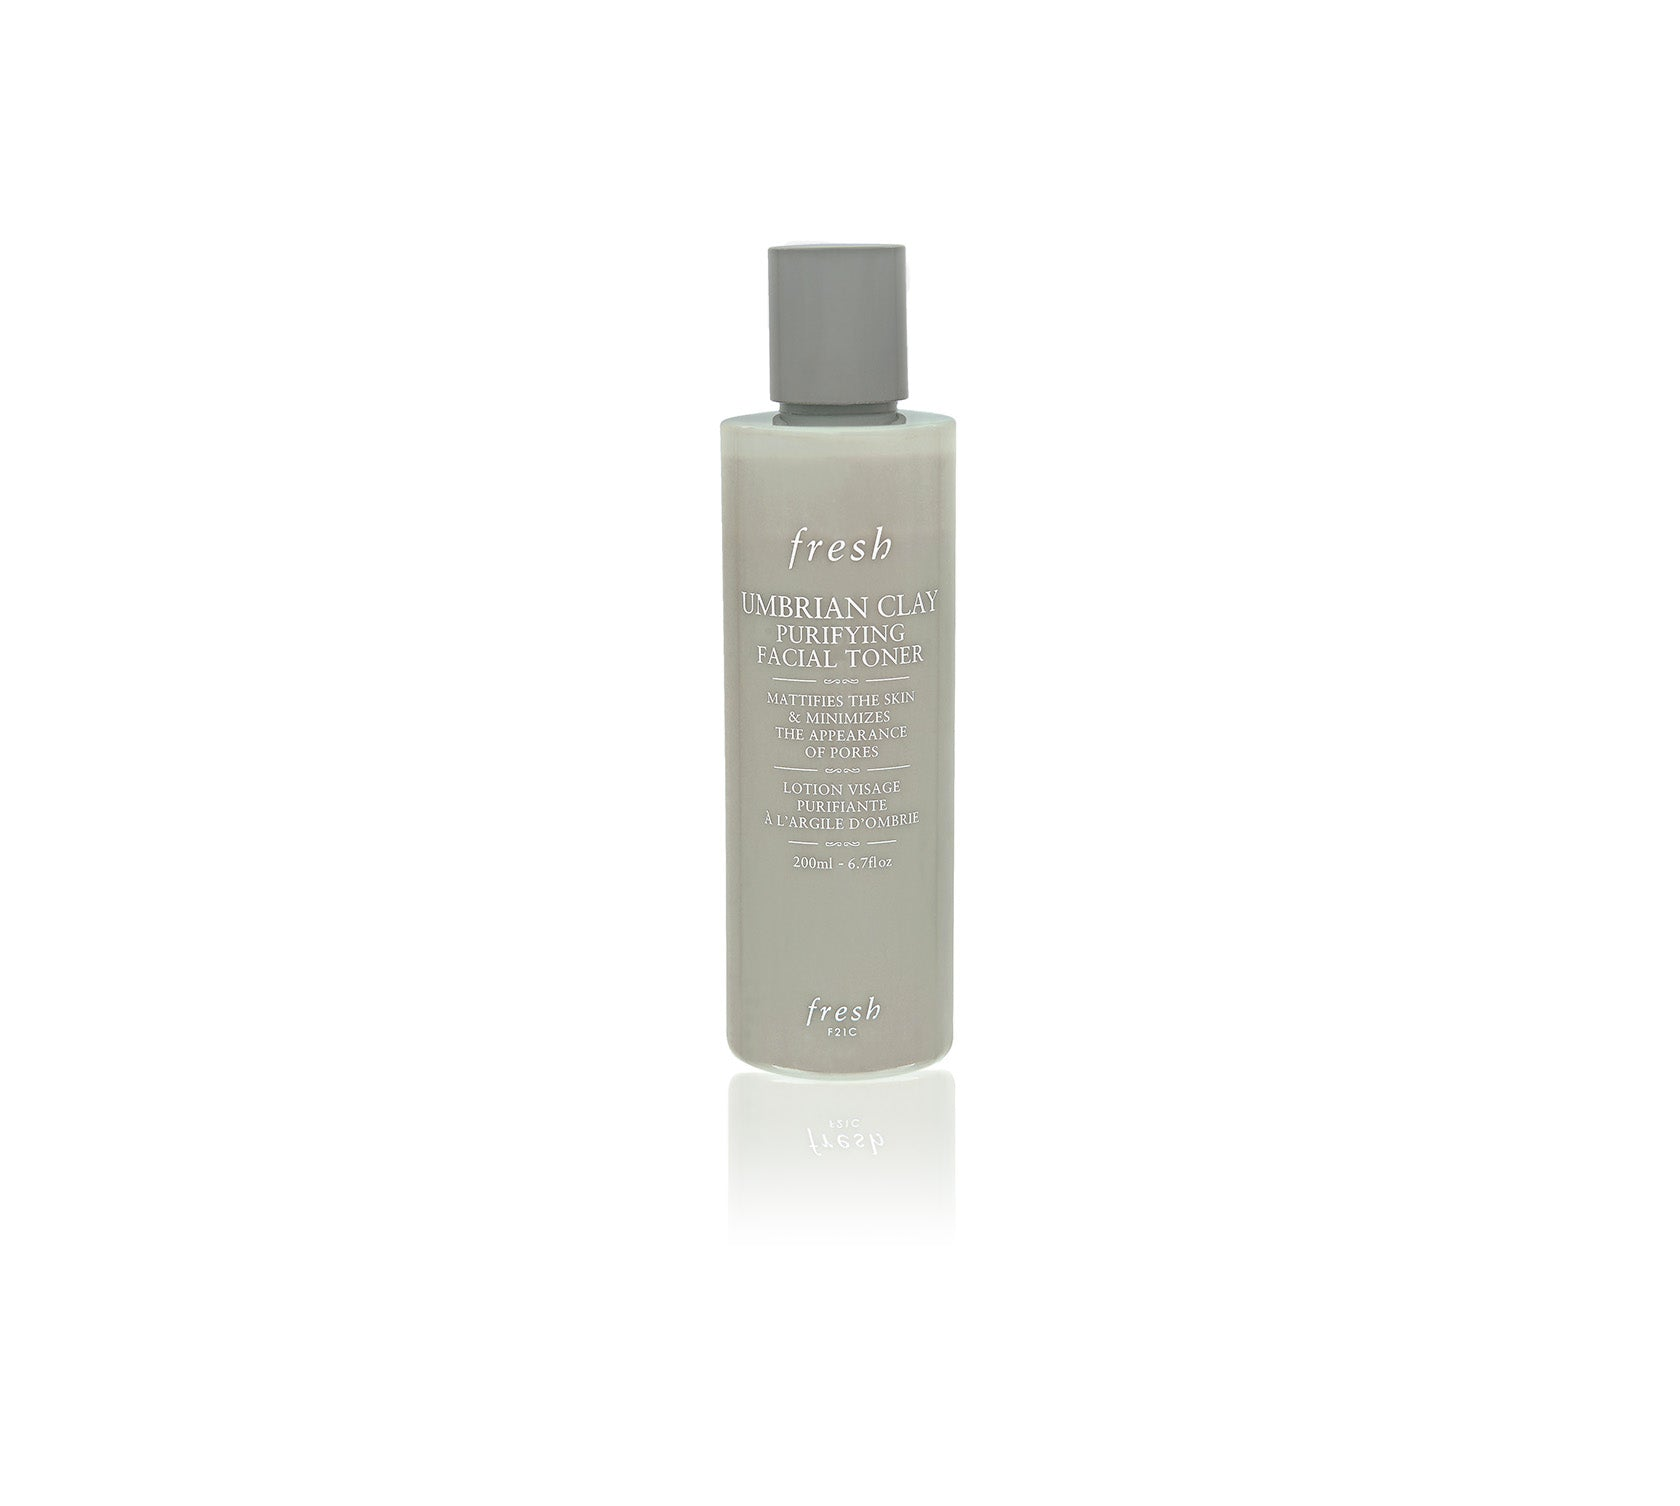 Umbrian Clay Purifying Facial Toner